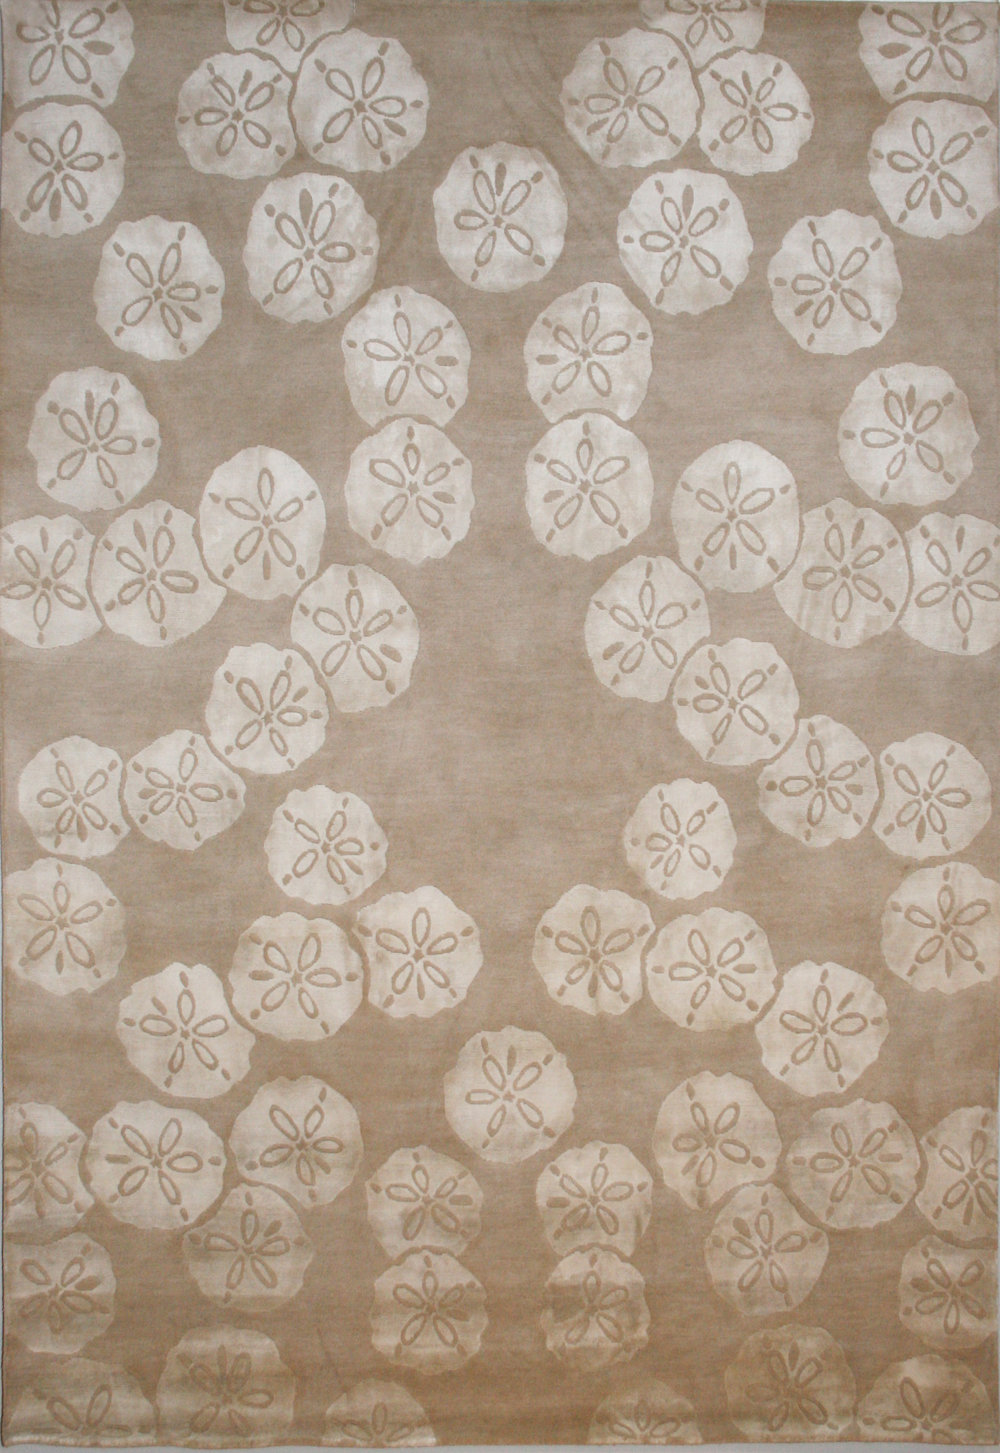 776 Sand Dollar, Wool and Silk, Nepal, 6'x9'